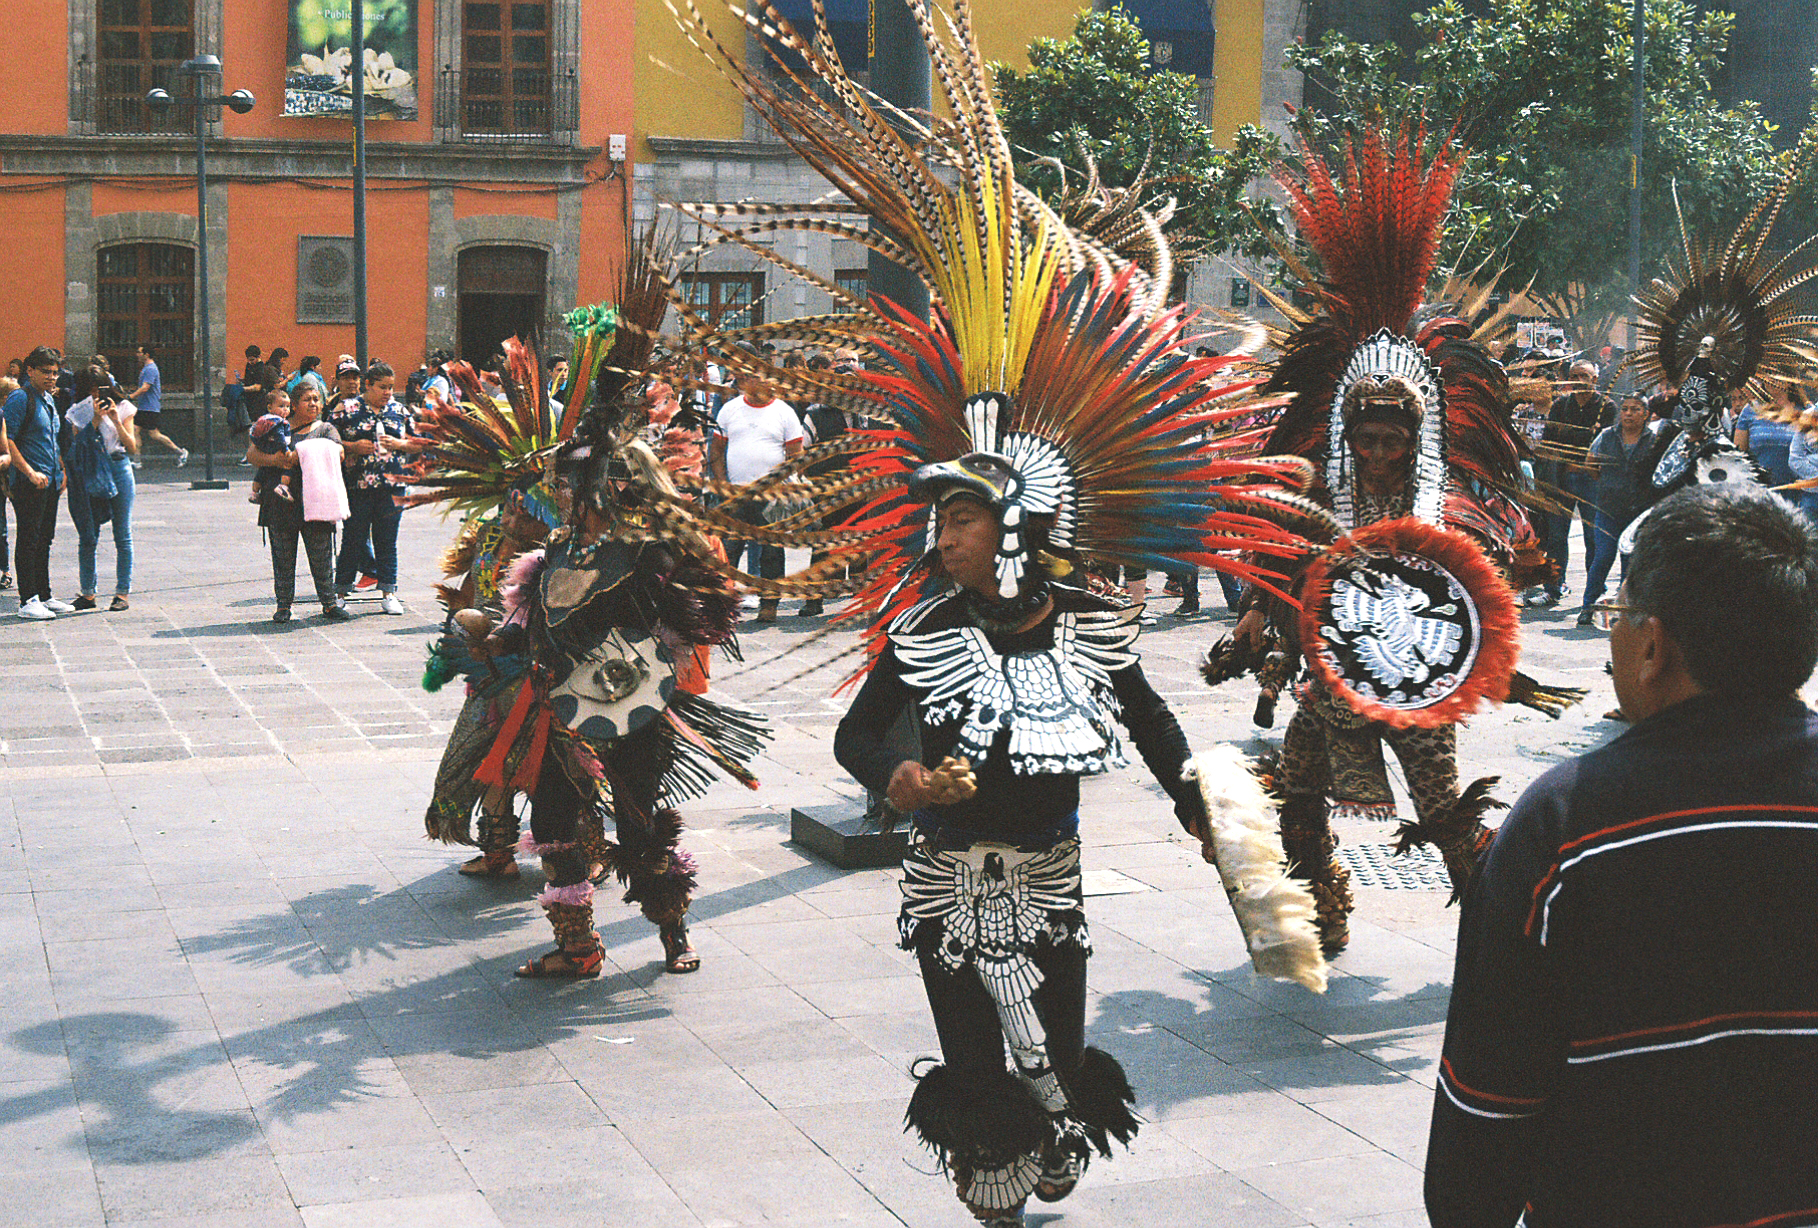 Native Aztecs performing ceremonial dance outside Mexico City Metropolitan Cathedral, shot on 35mm film. Amazing feather headdresses.